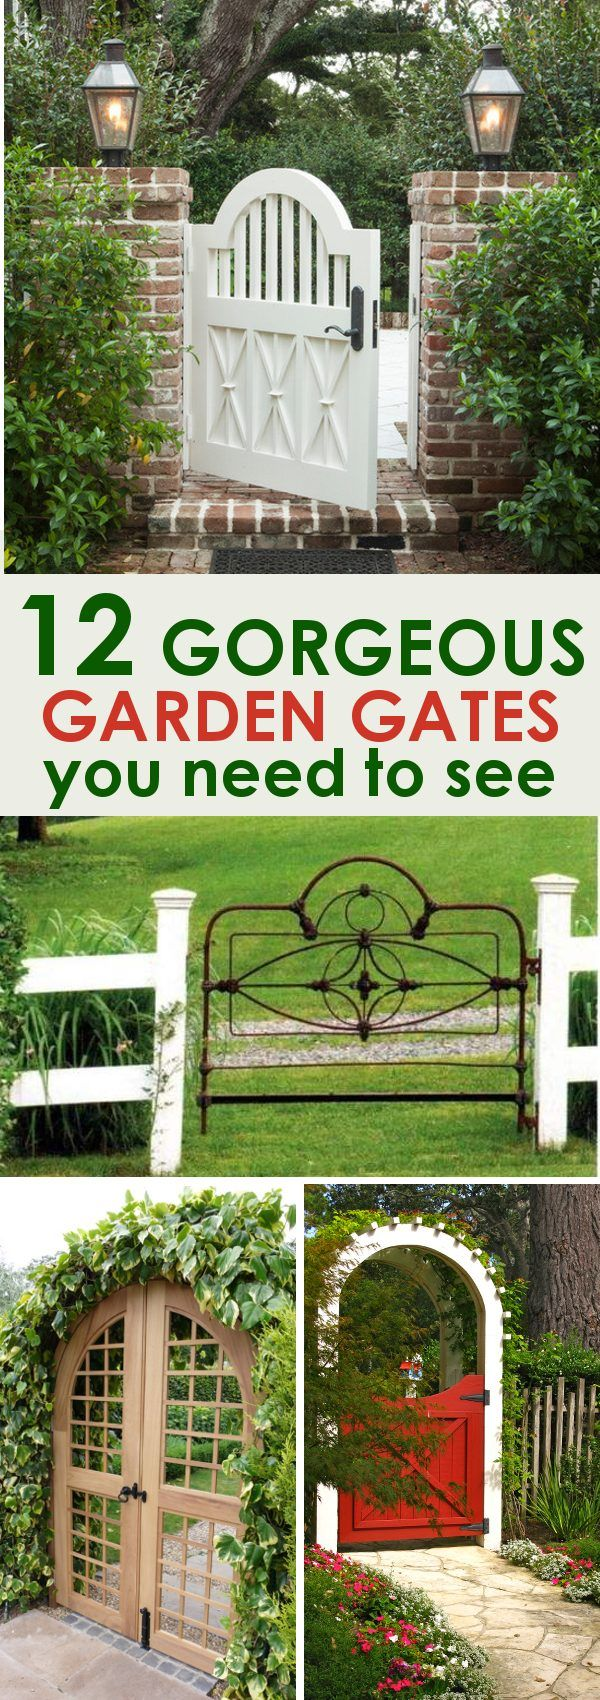 Garden Gates: 12 Garden gates for you to drool over and build yourself! These garden gate ideas will inspire you and help you create the most beautiful garden space for your home.